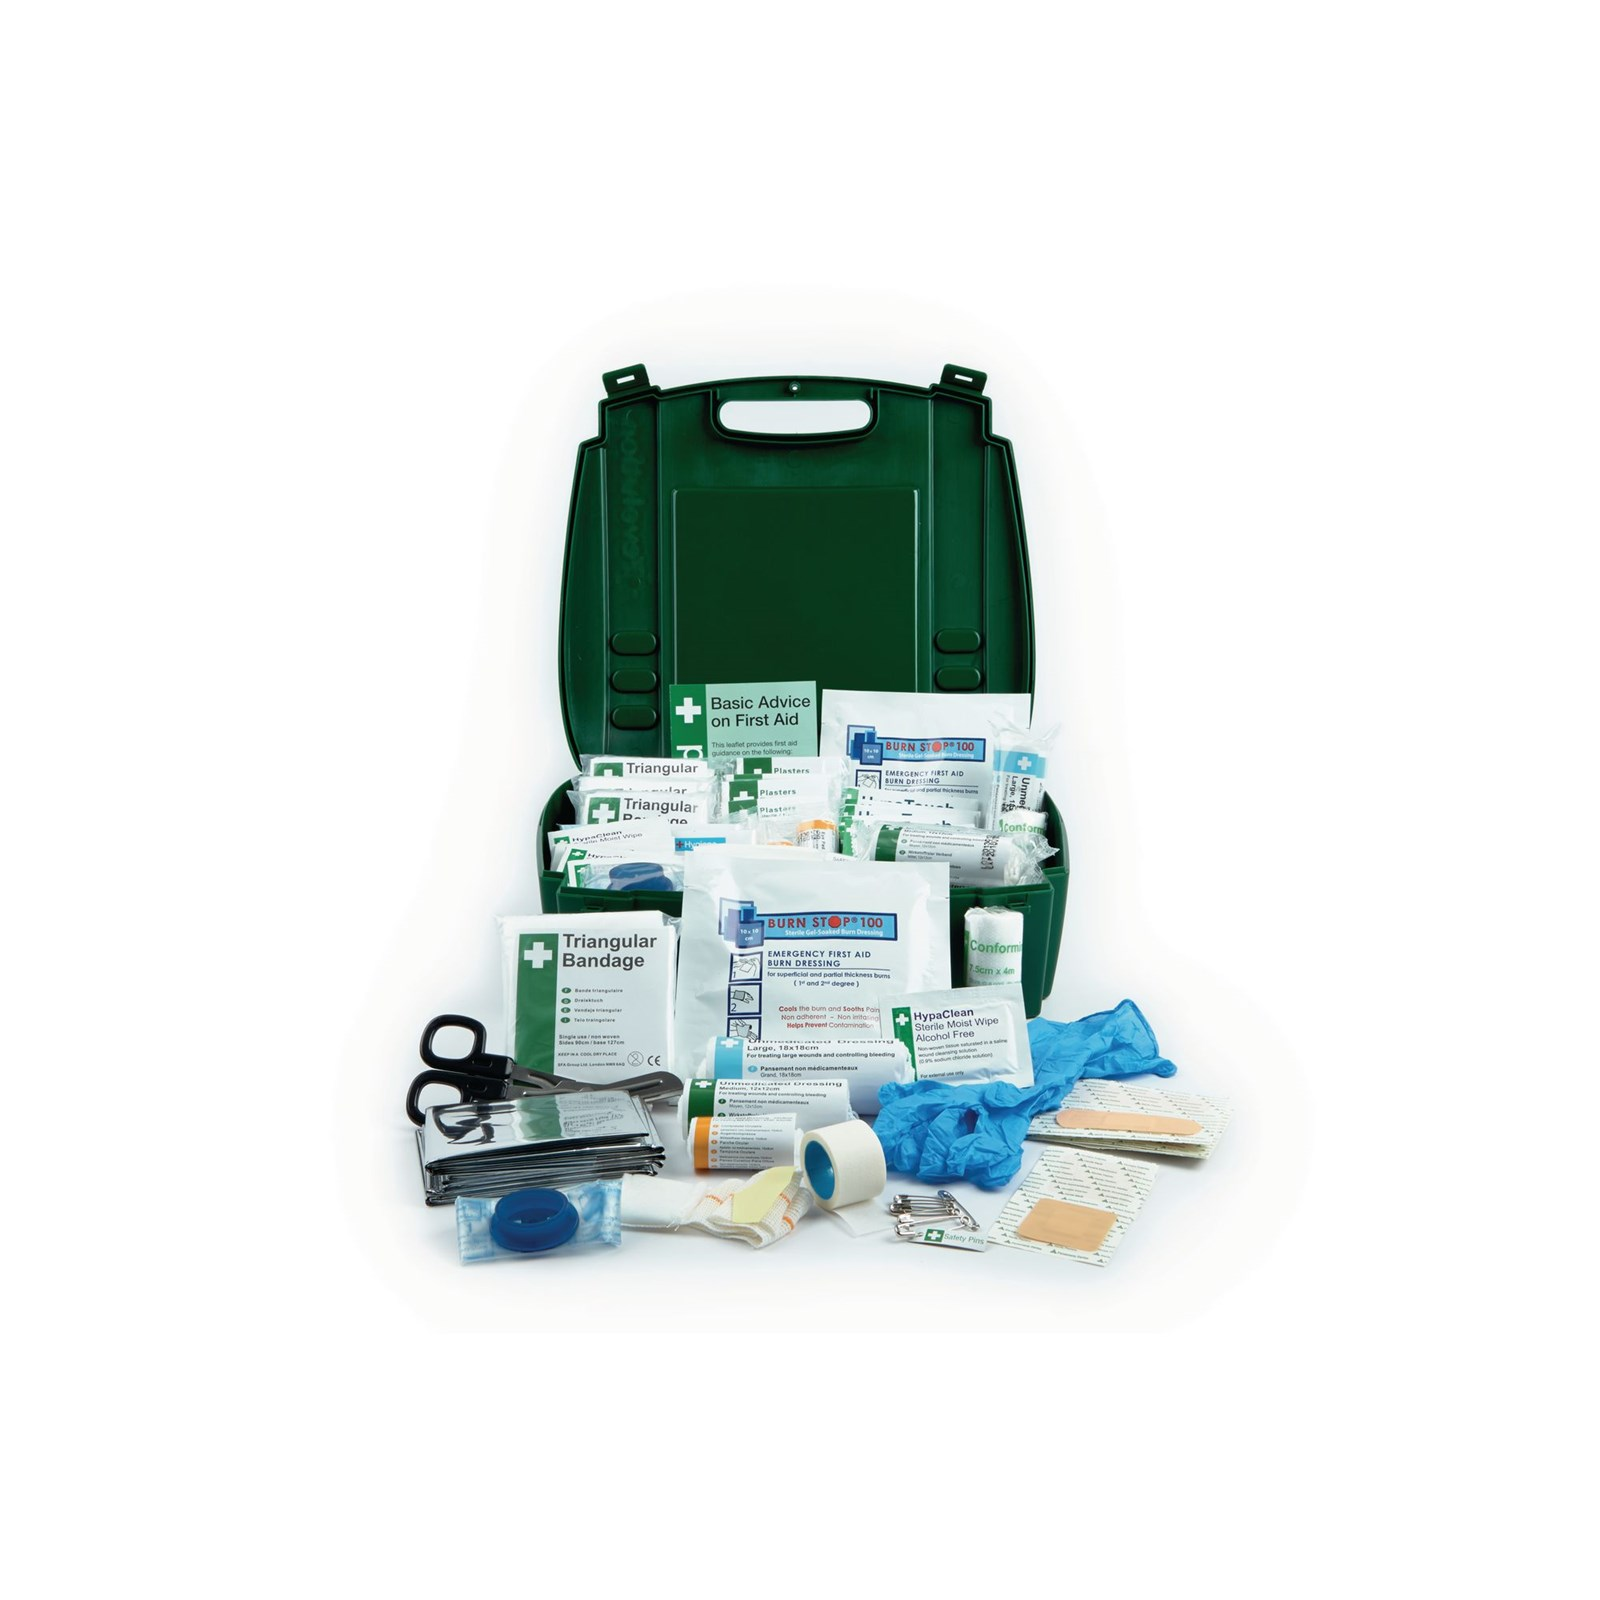 Evolution BS8599 First Aid Kit - A